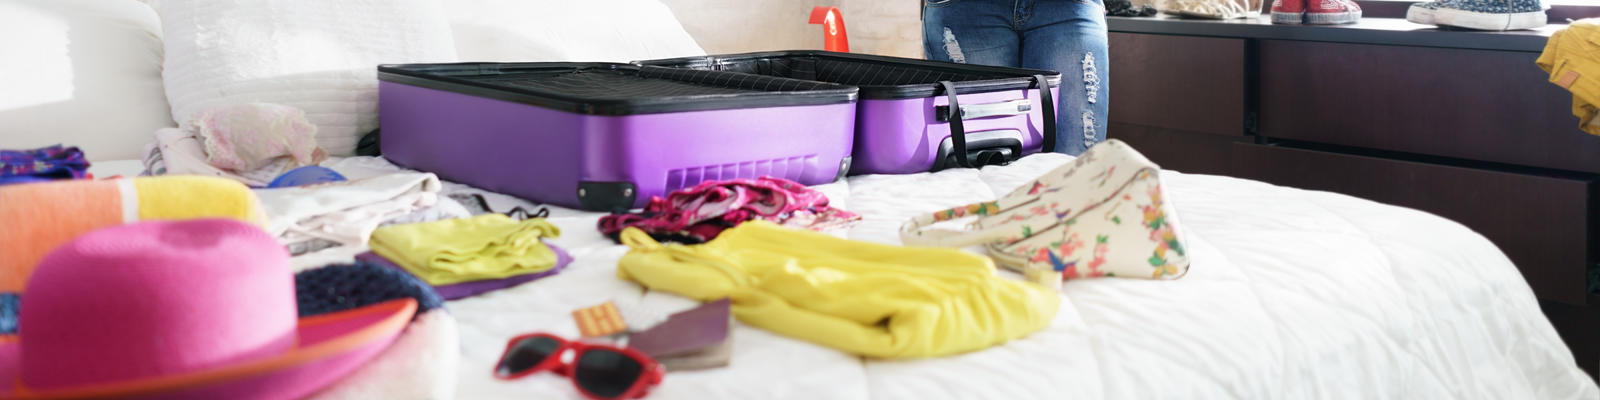 Stay organized when packing for your cruise (Photo: Diego Cervo/Shutterstock)